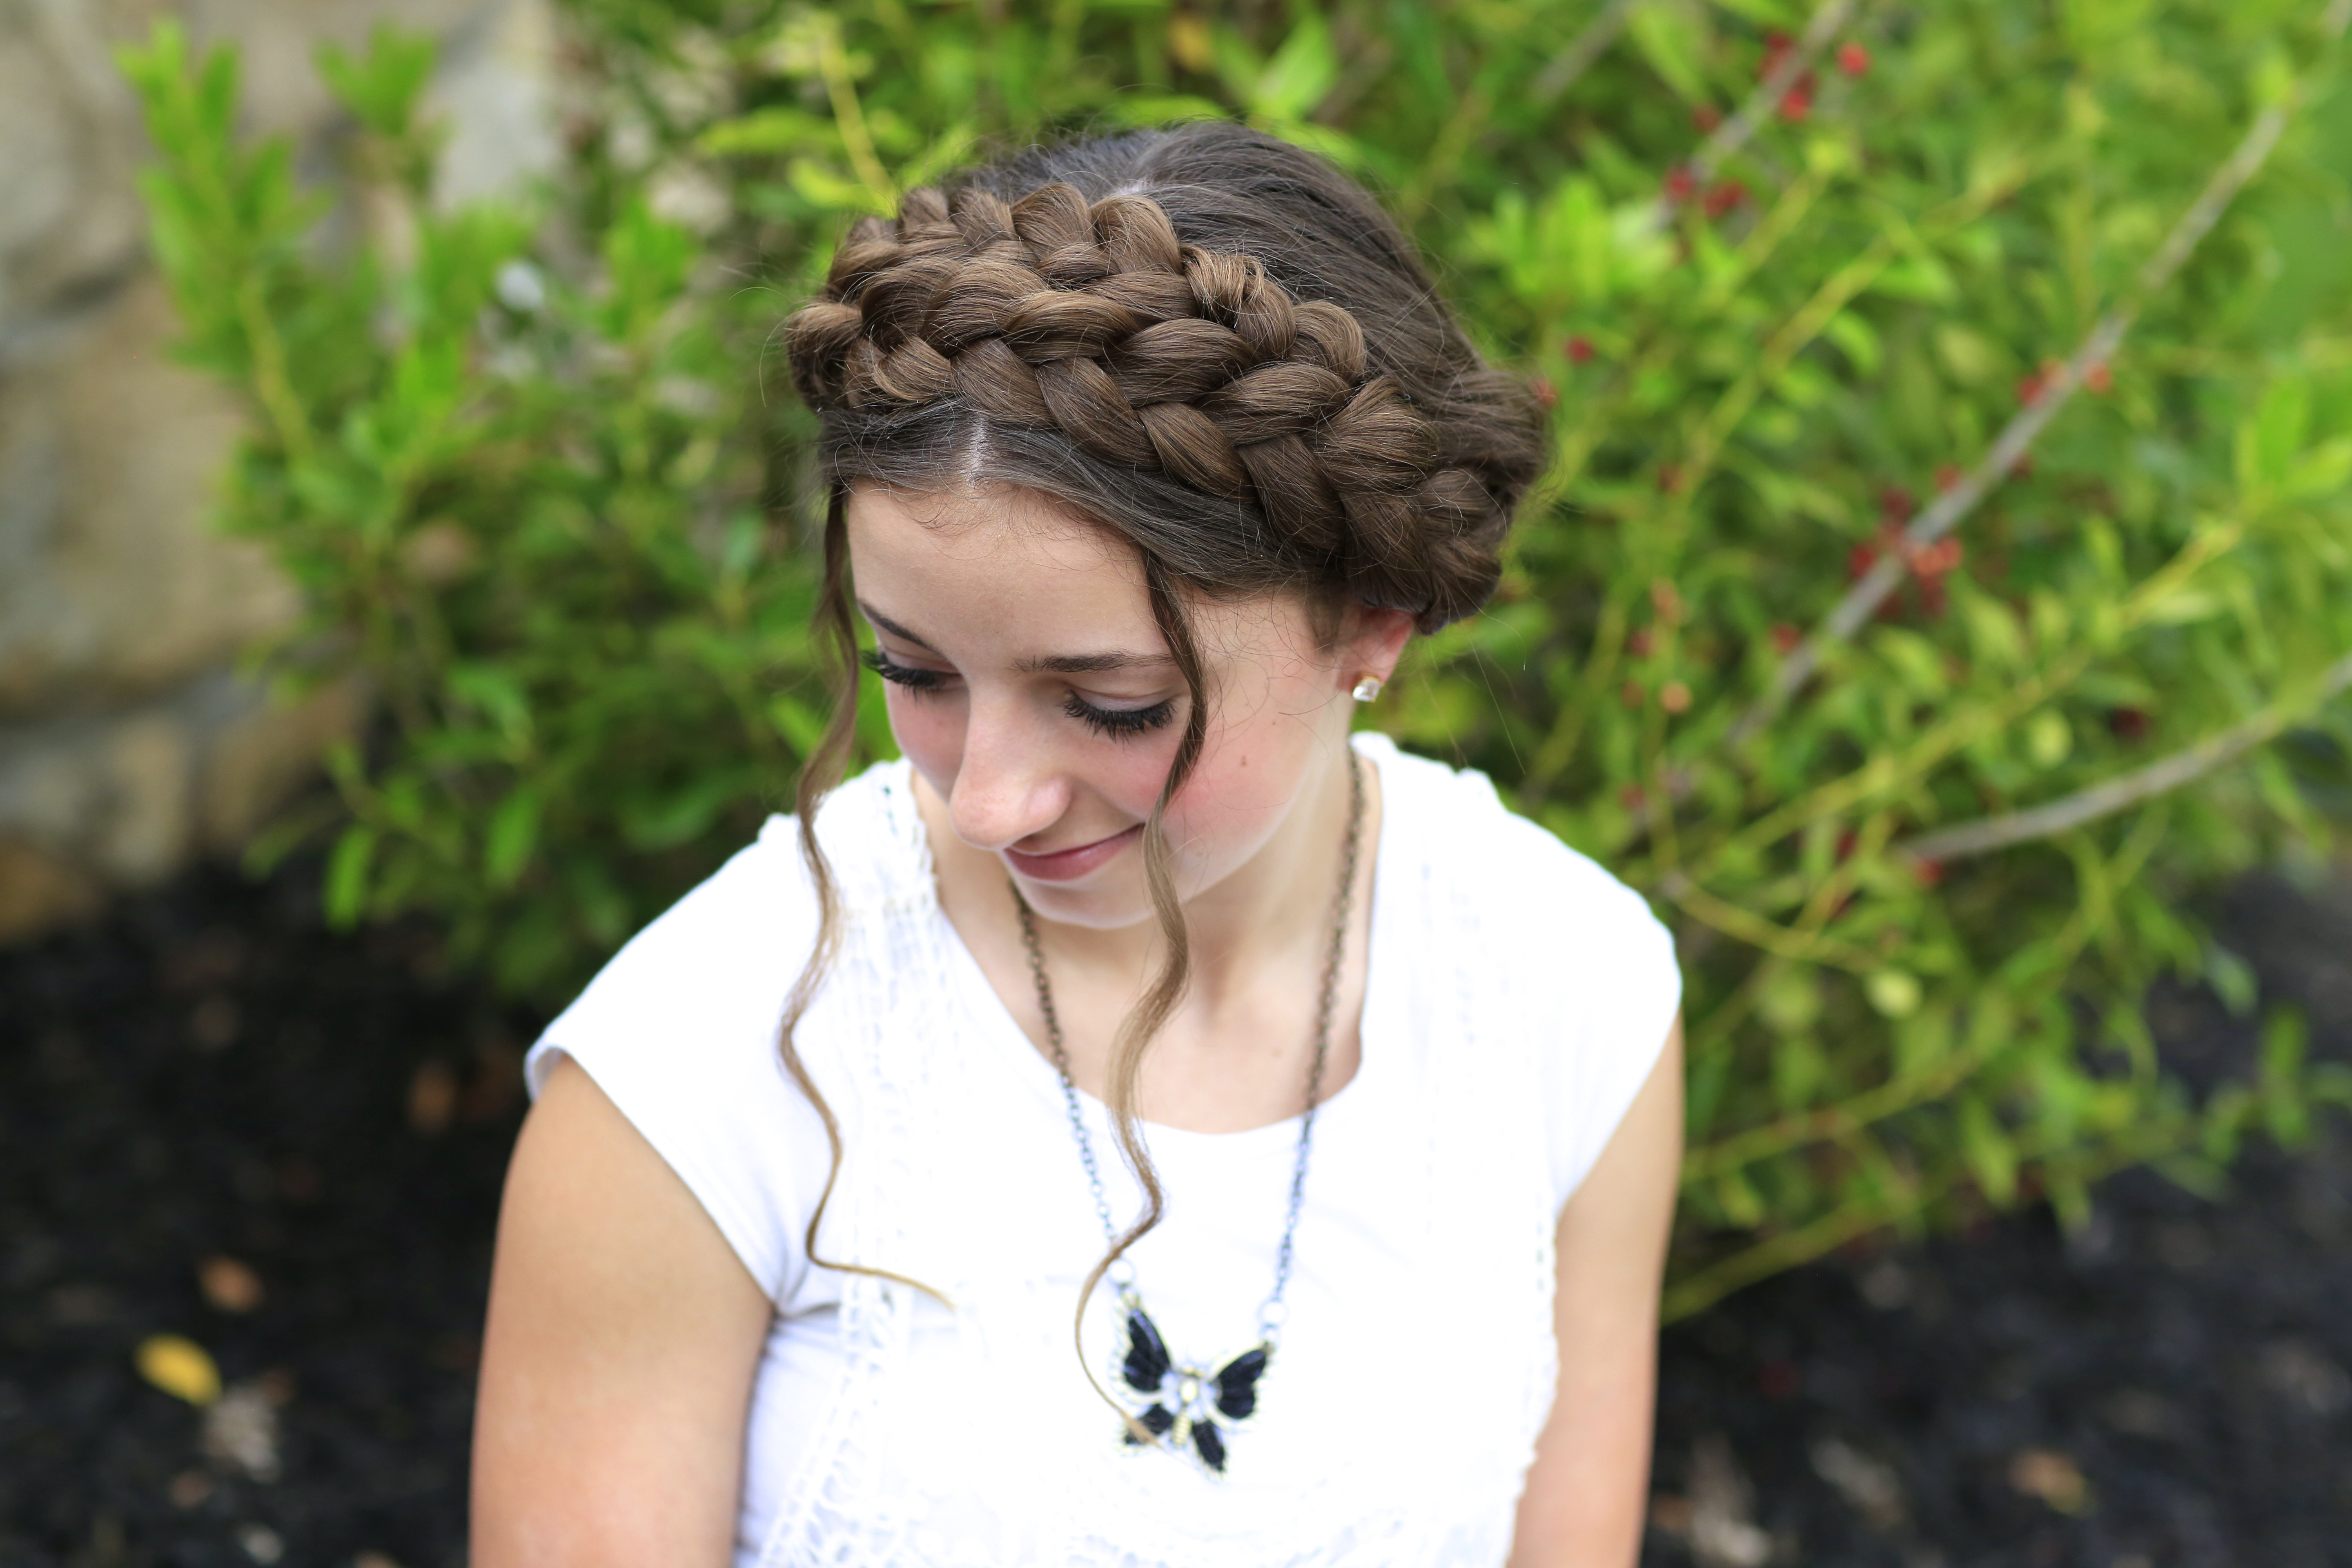 Best ideas about Cute White Girl Hairstyles . Save or Pin Milkmaid Braid Cute Summer Hairstyles Now.